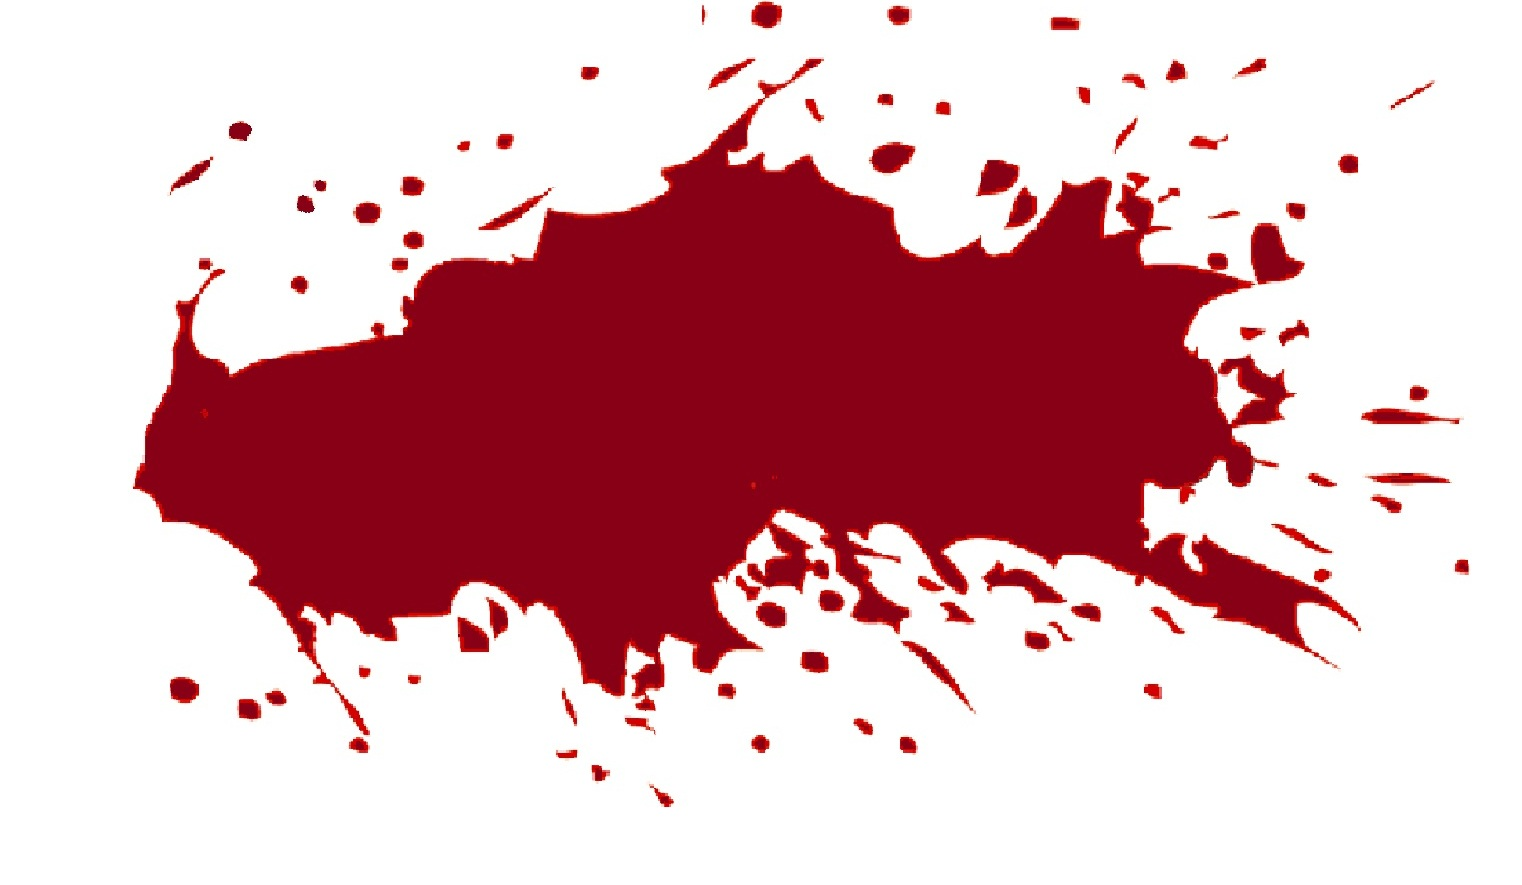 Blood Splatter Clipart Clipar - Blood Splatter Clipart